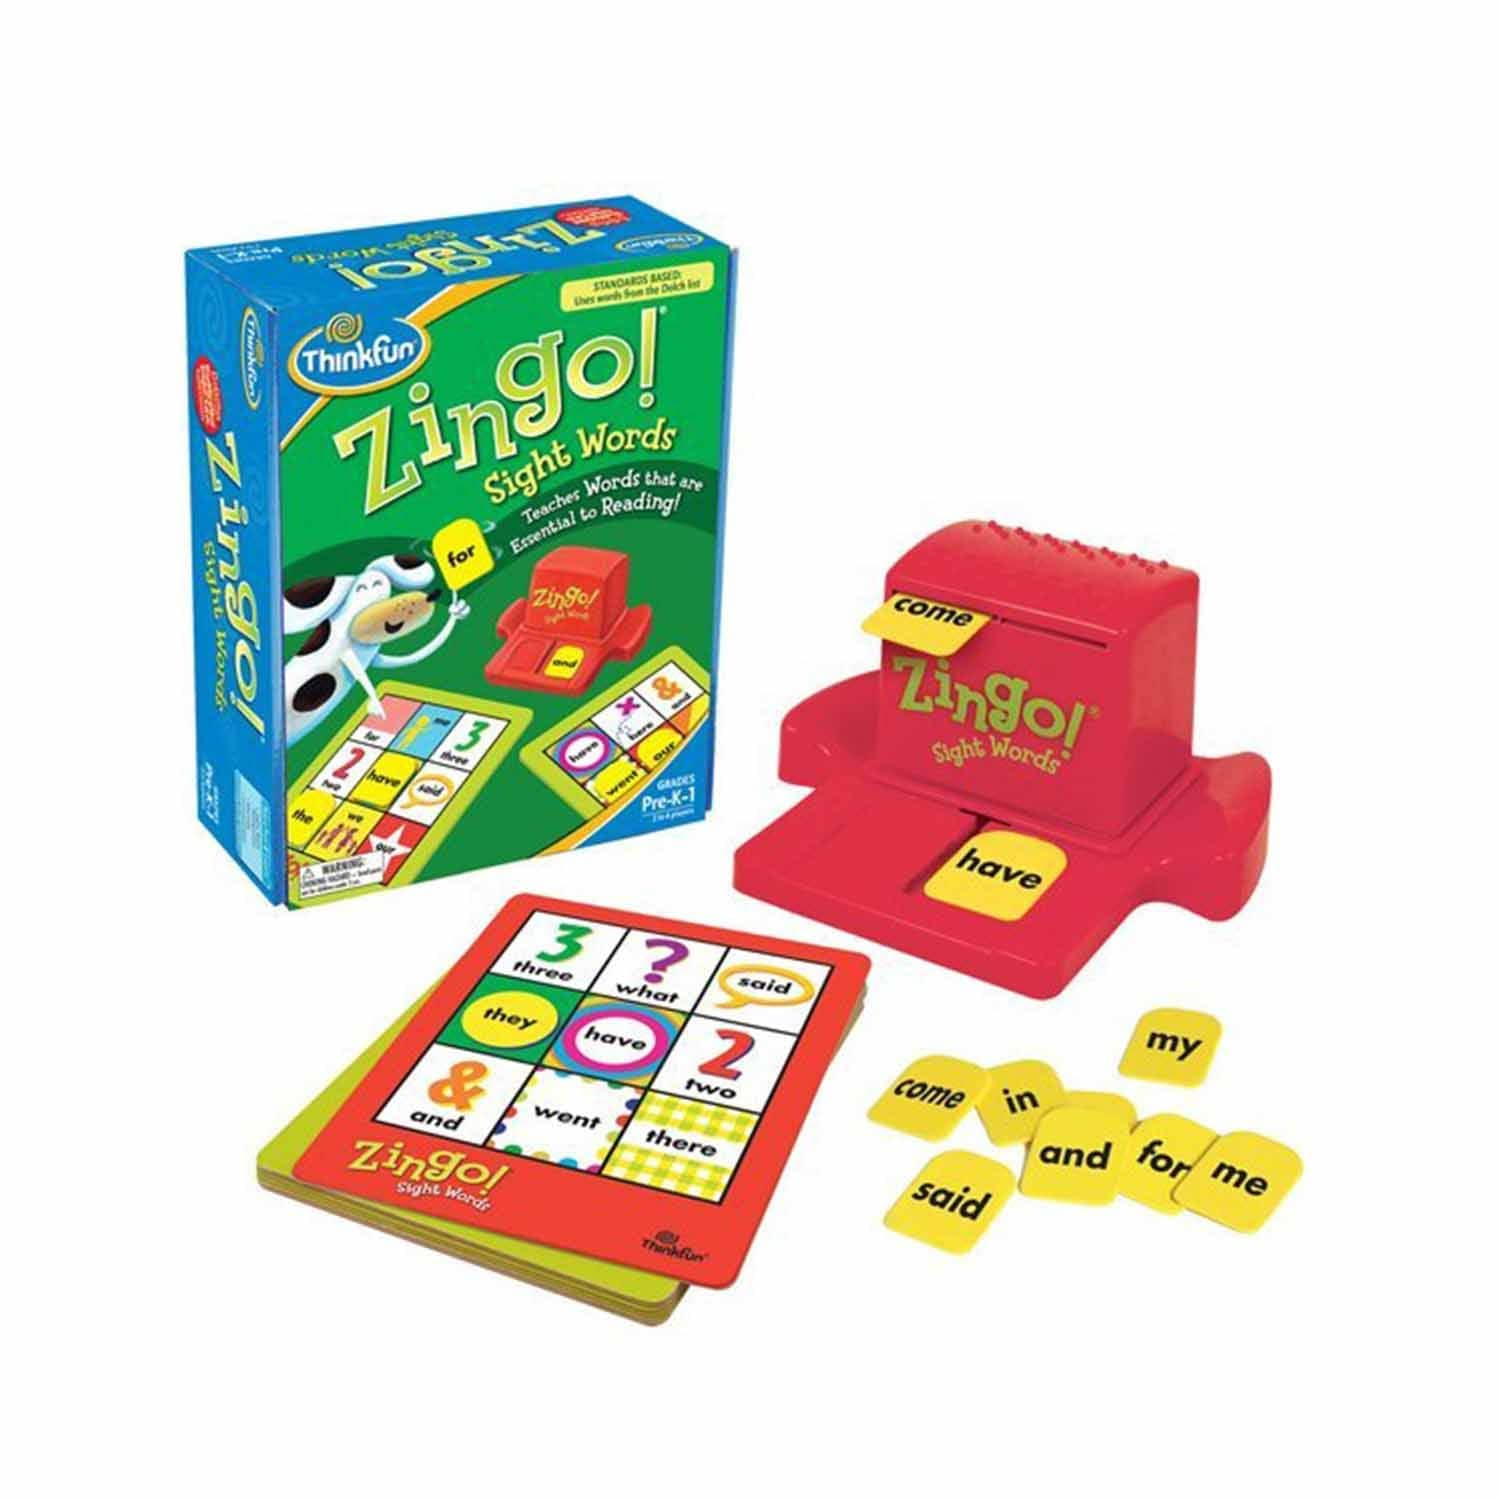 ThinkFun Zingo! İngilizce SightWords